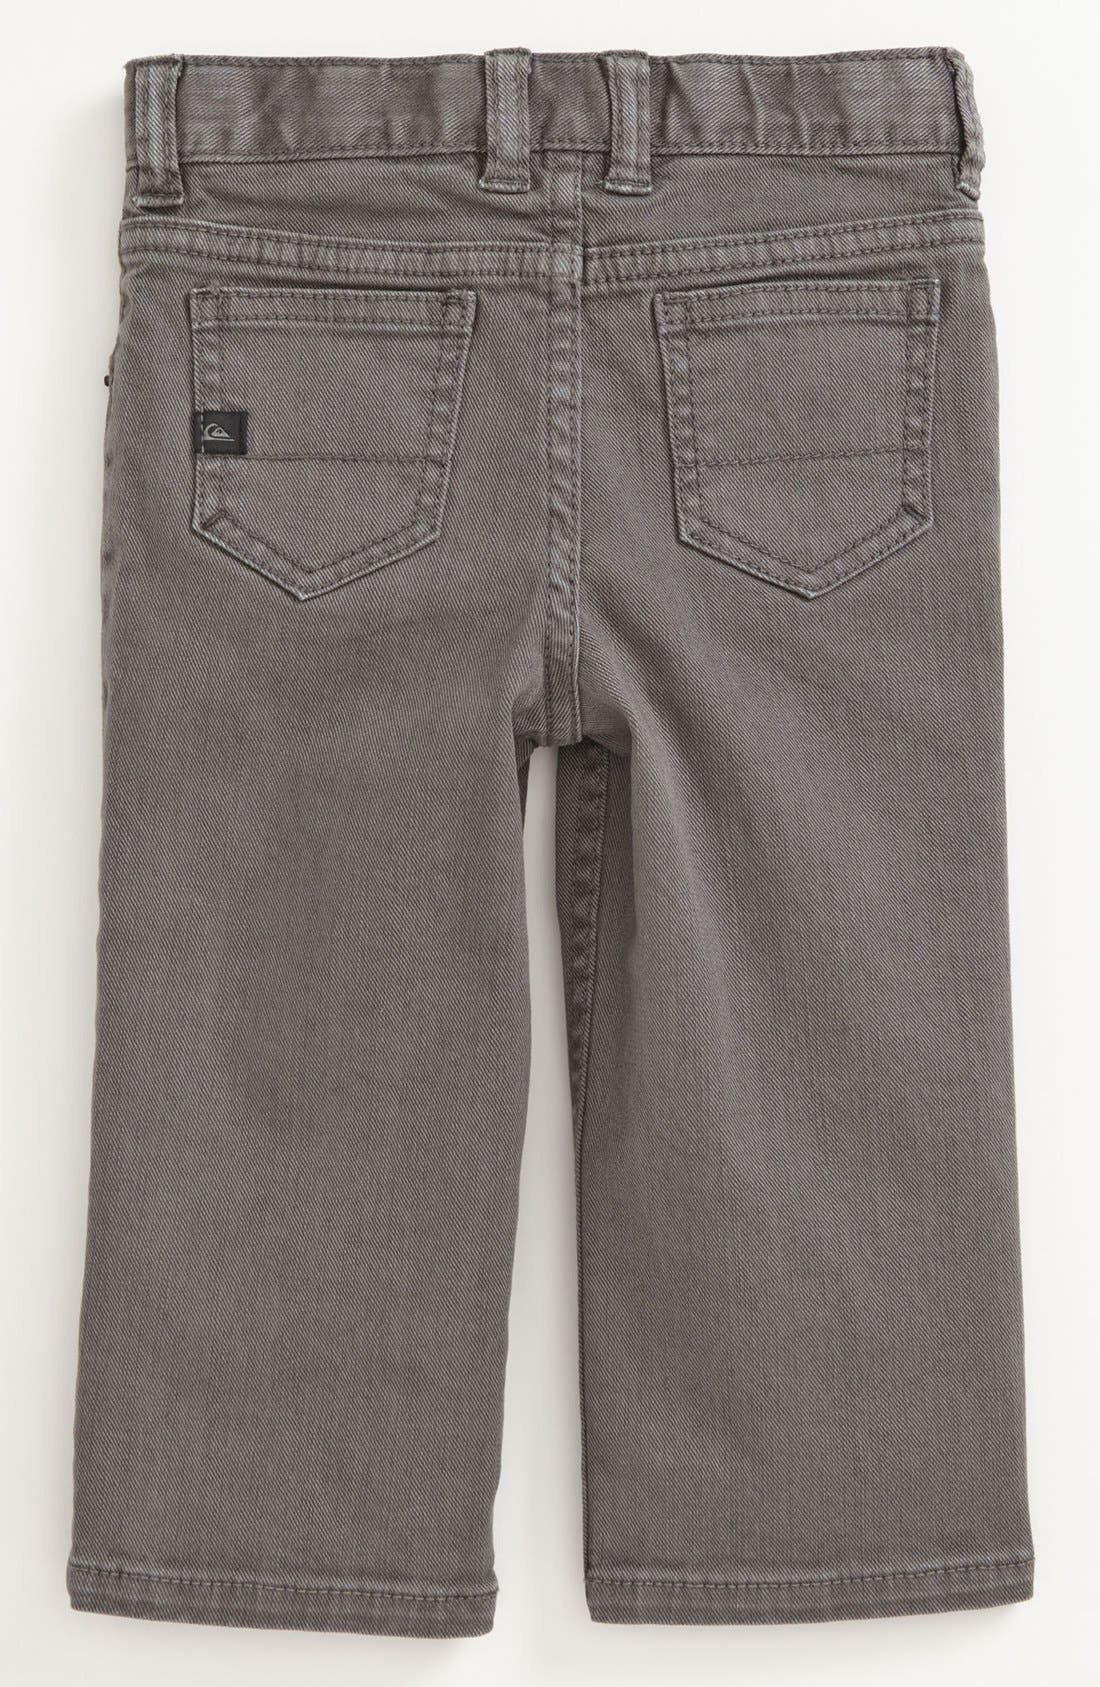 Main Image - Quiksilver 'Distortion' Pants (Toddler Boys)